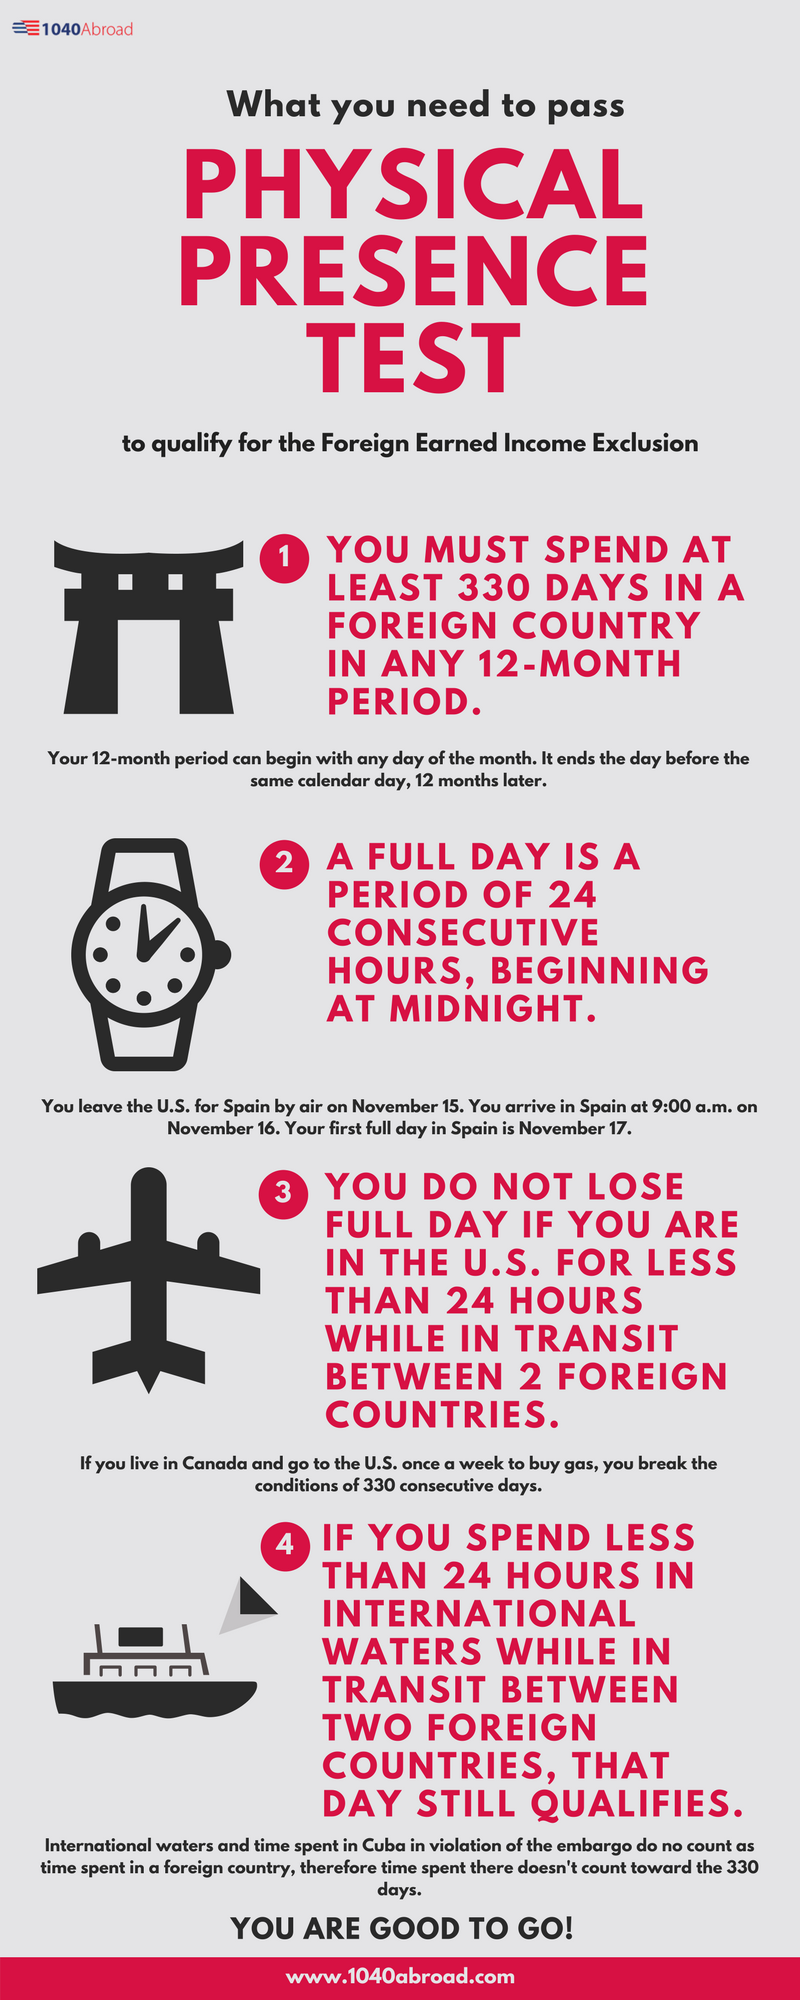 Infographic for US expats on How to qualify for physical presence test